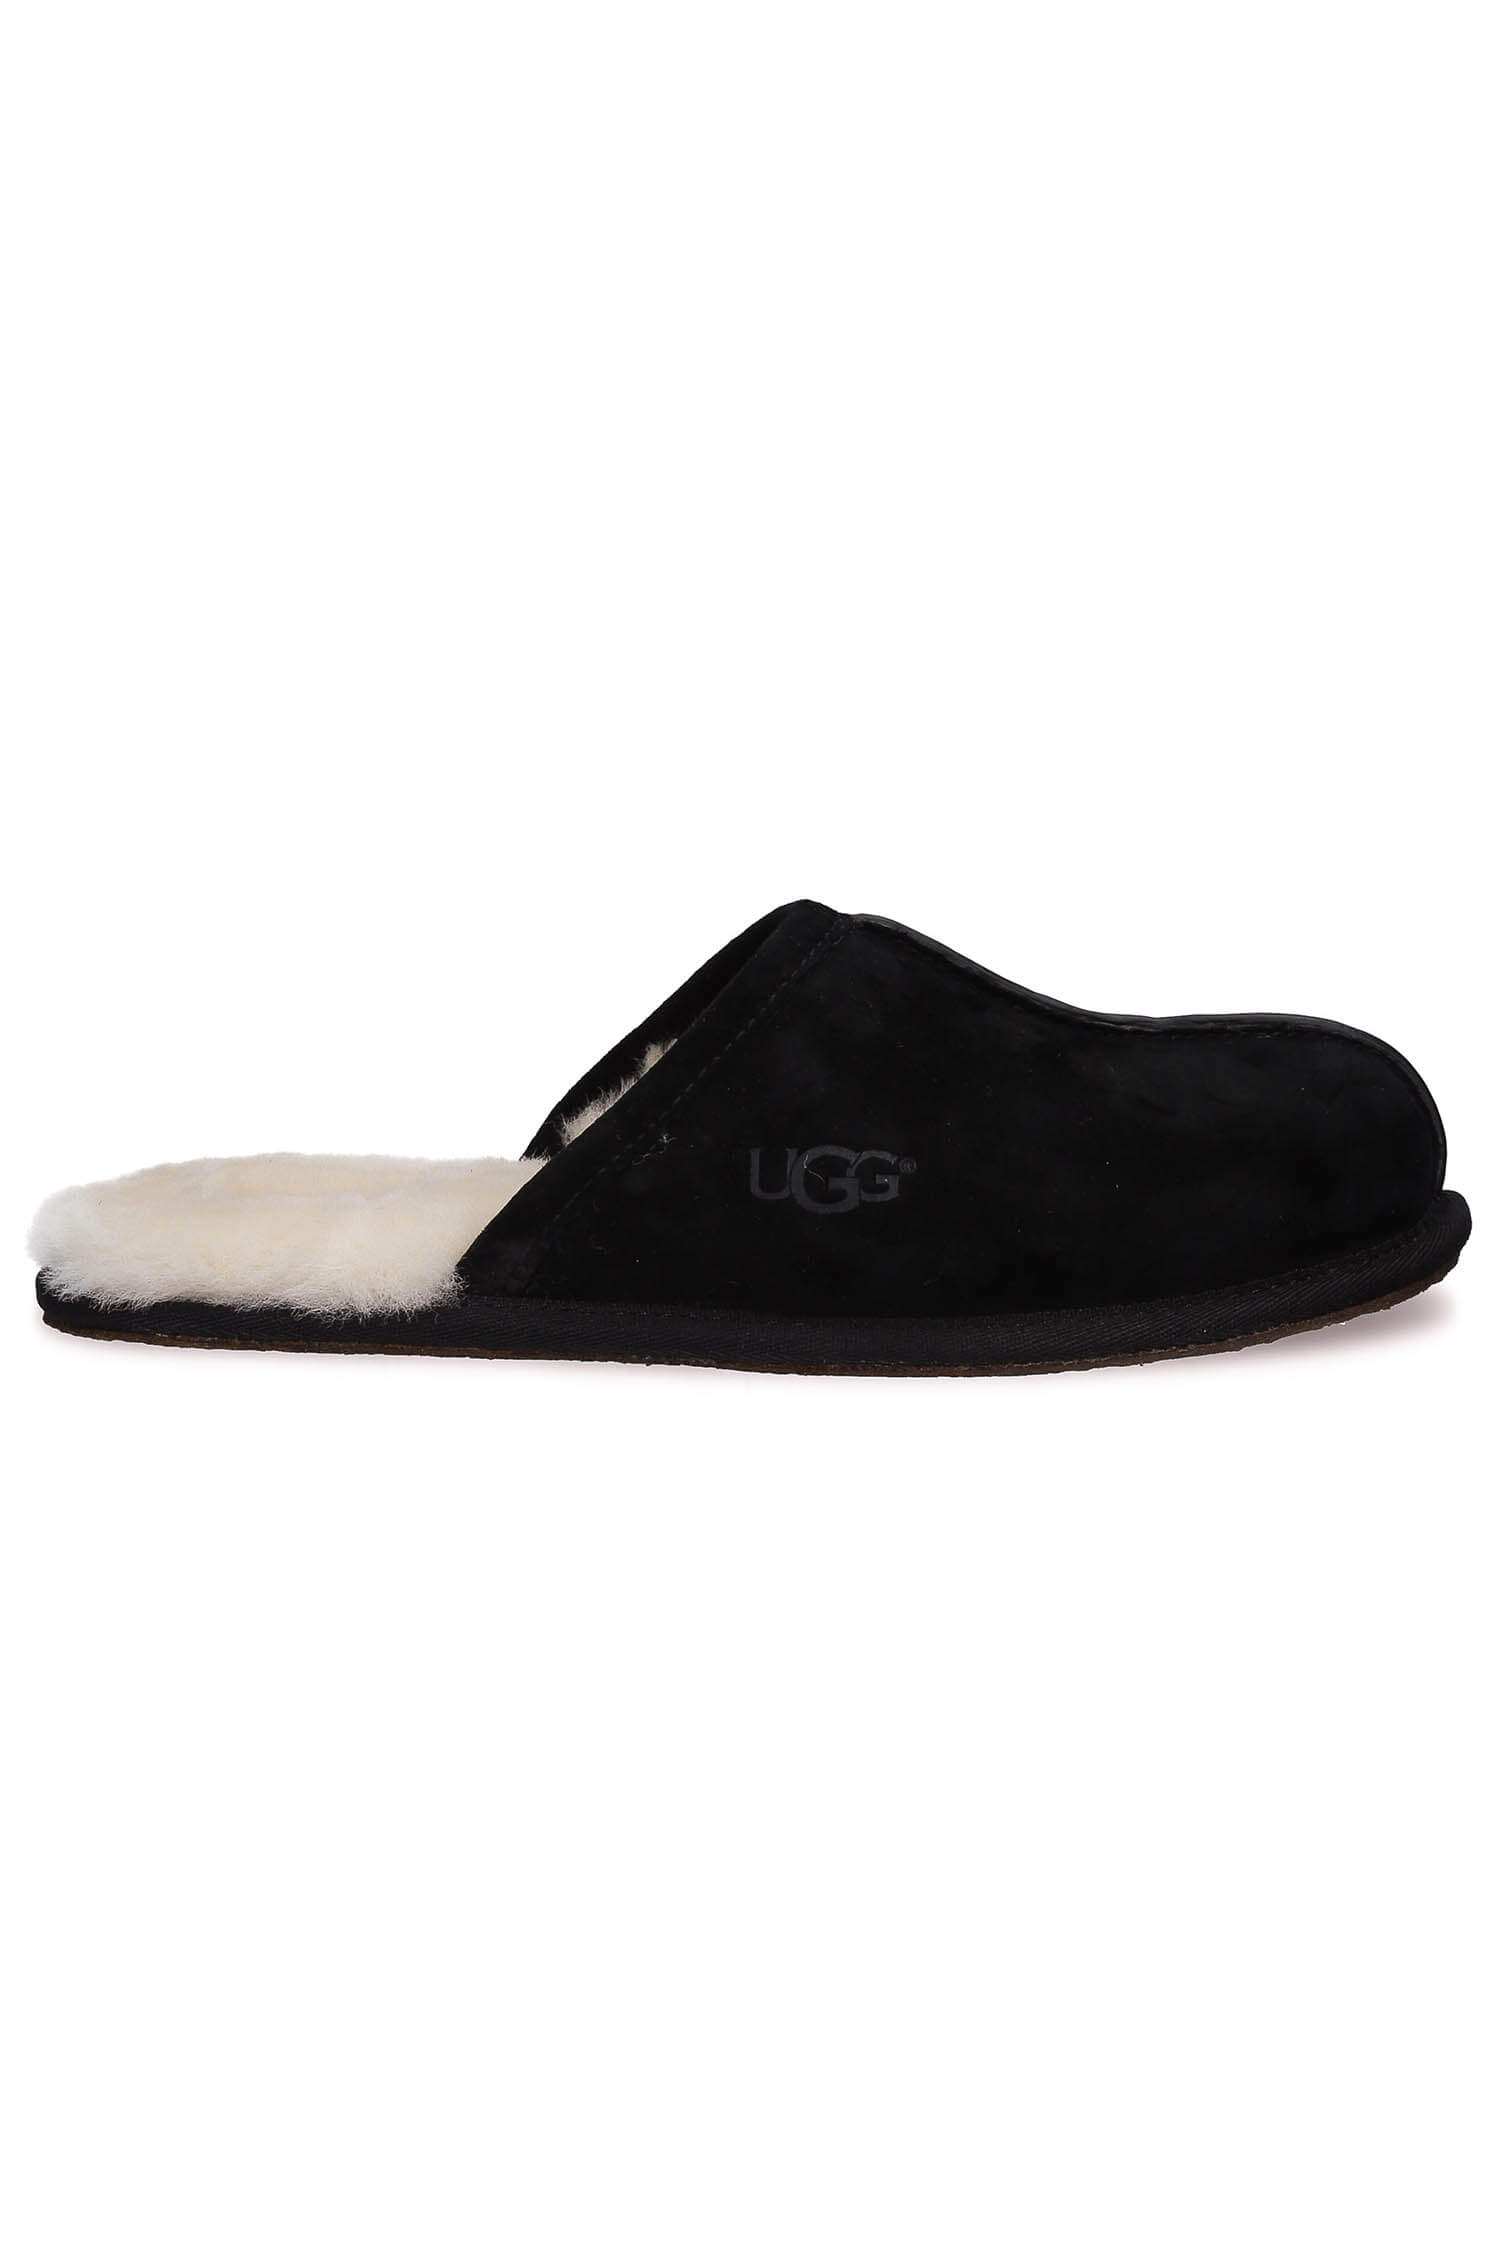 chausson homme ugg